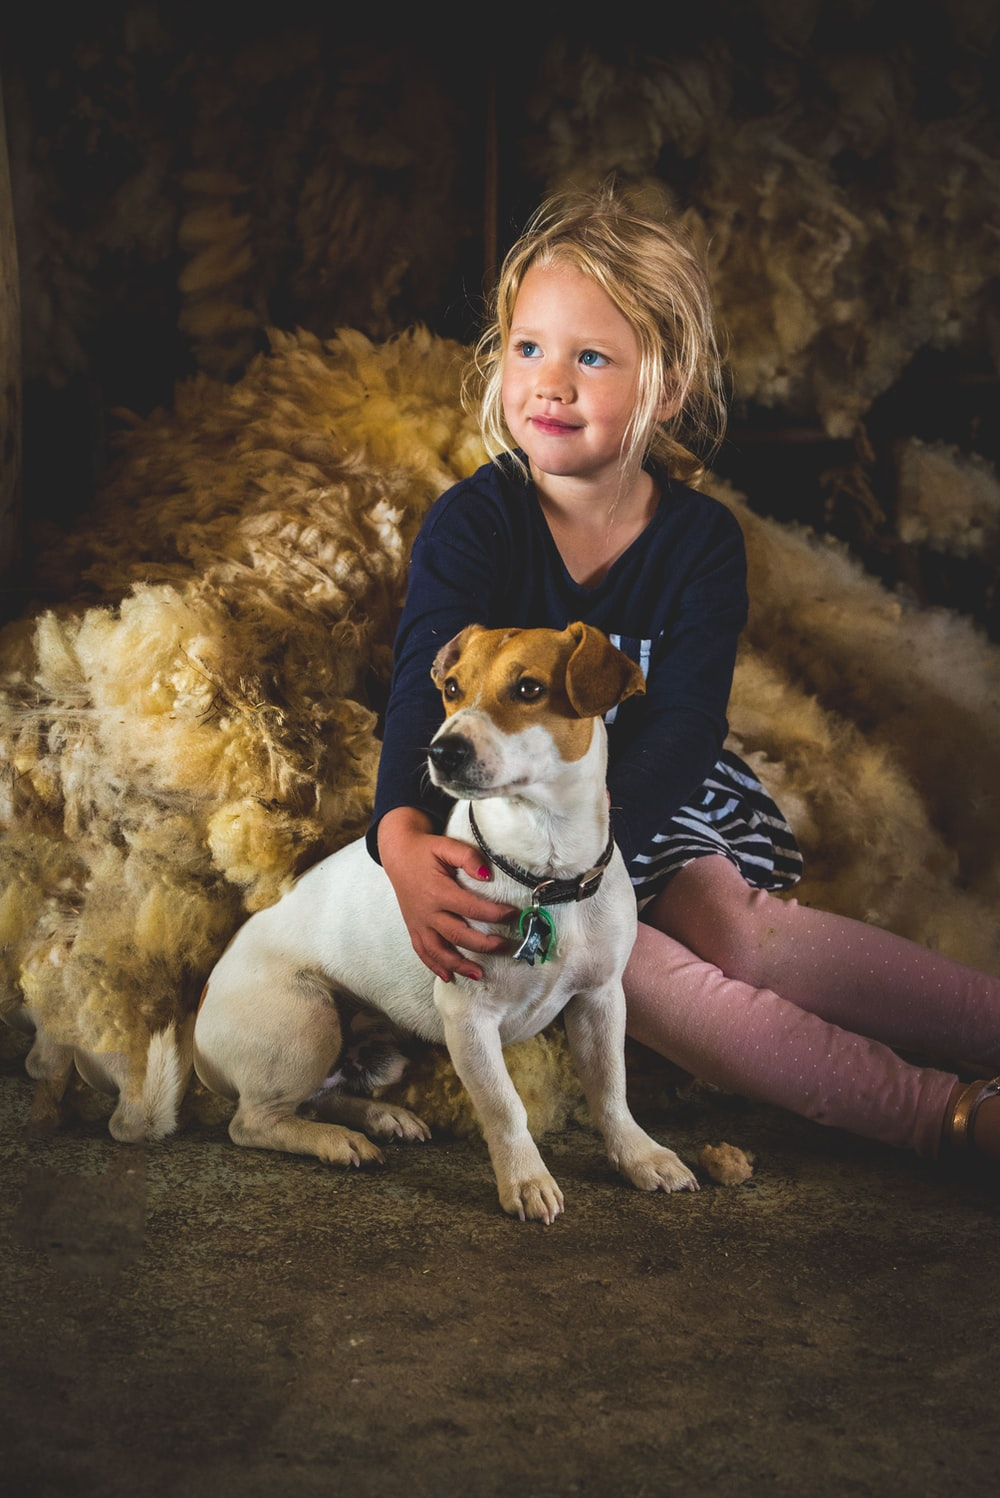 girl in blue long-sleeved shirt holding brown and white Jack Russel terrier